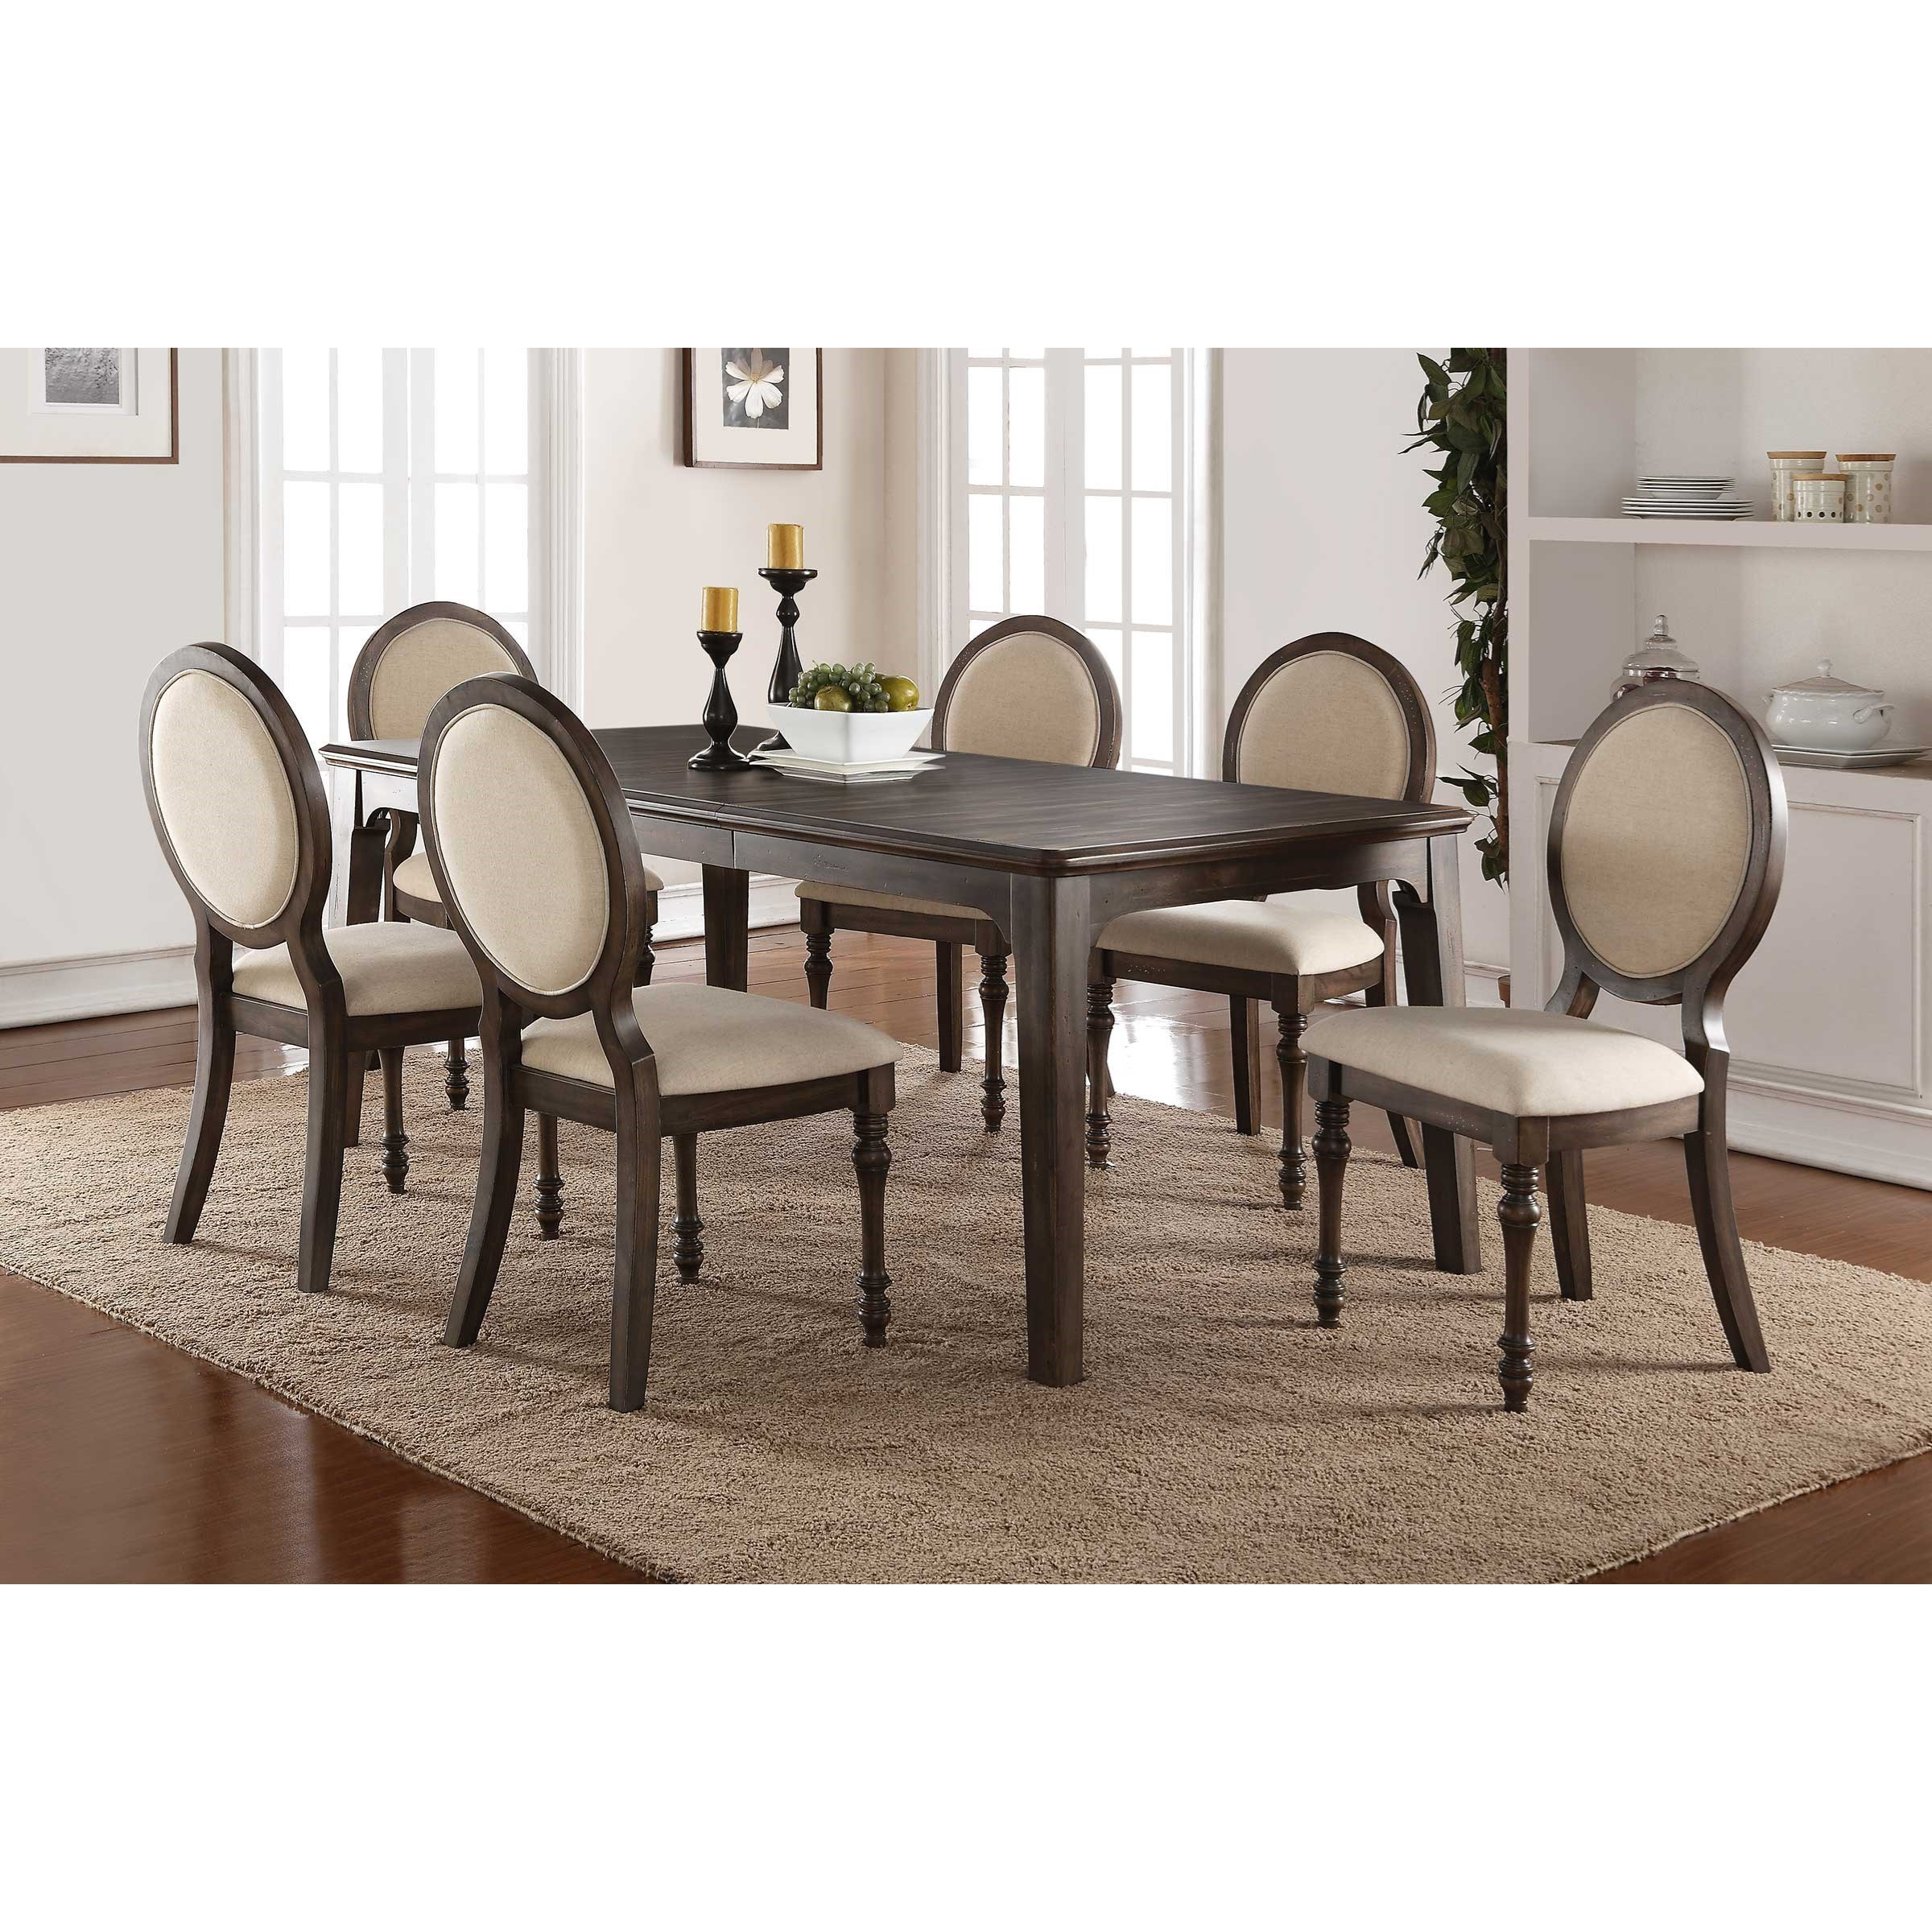 Daphne Dining Set with Upholstered Oval Back Chairs by Winners Only at O'Dunk & O'Bright Furniture